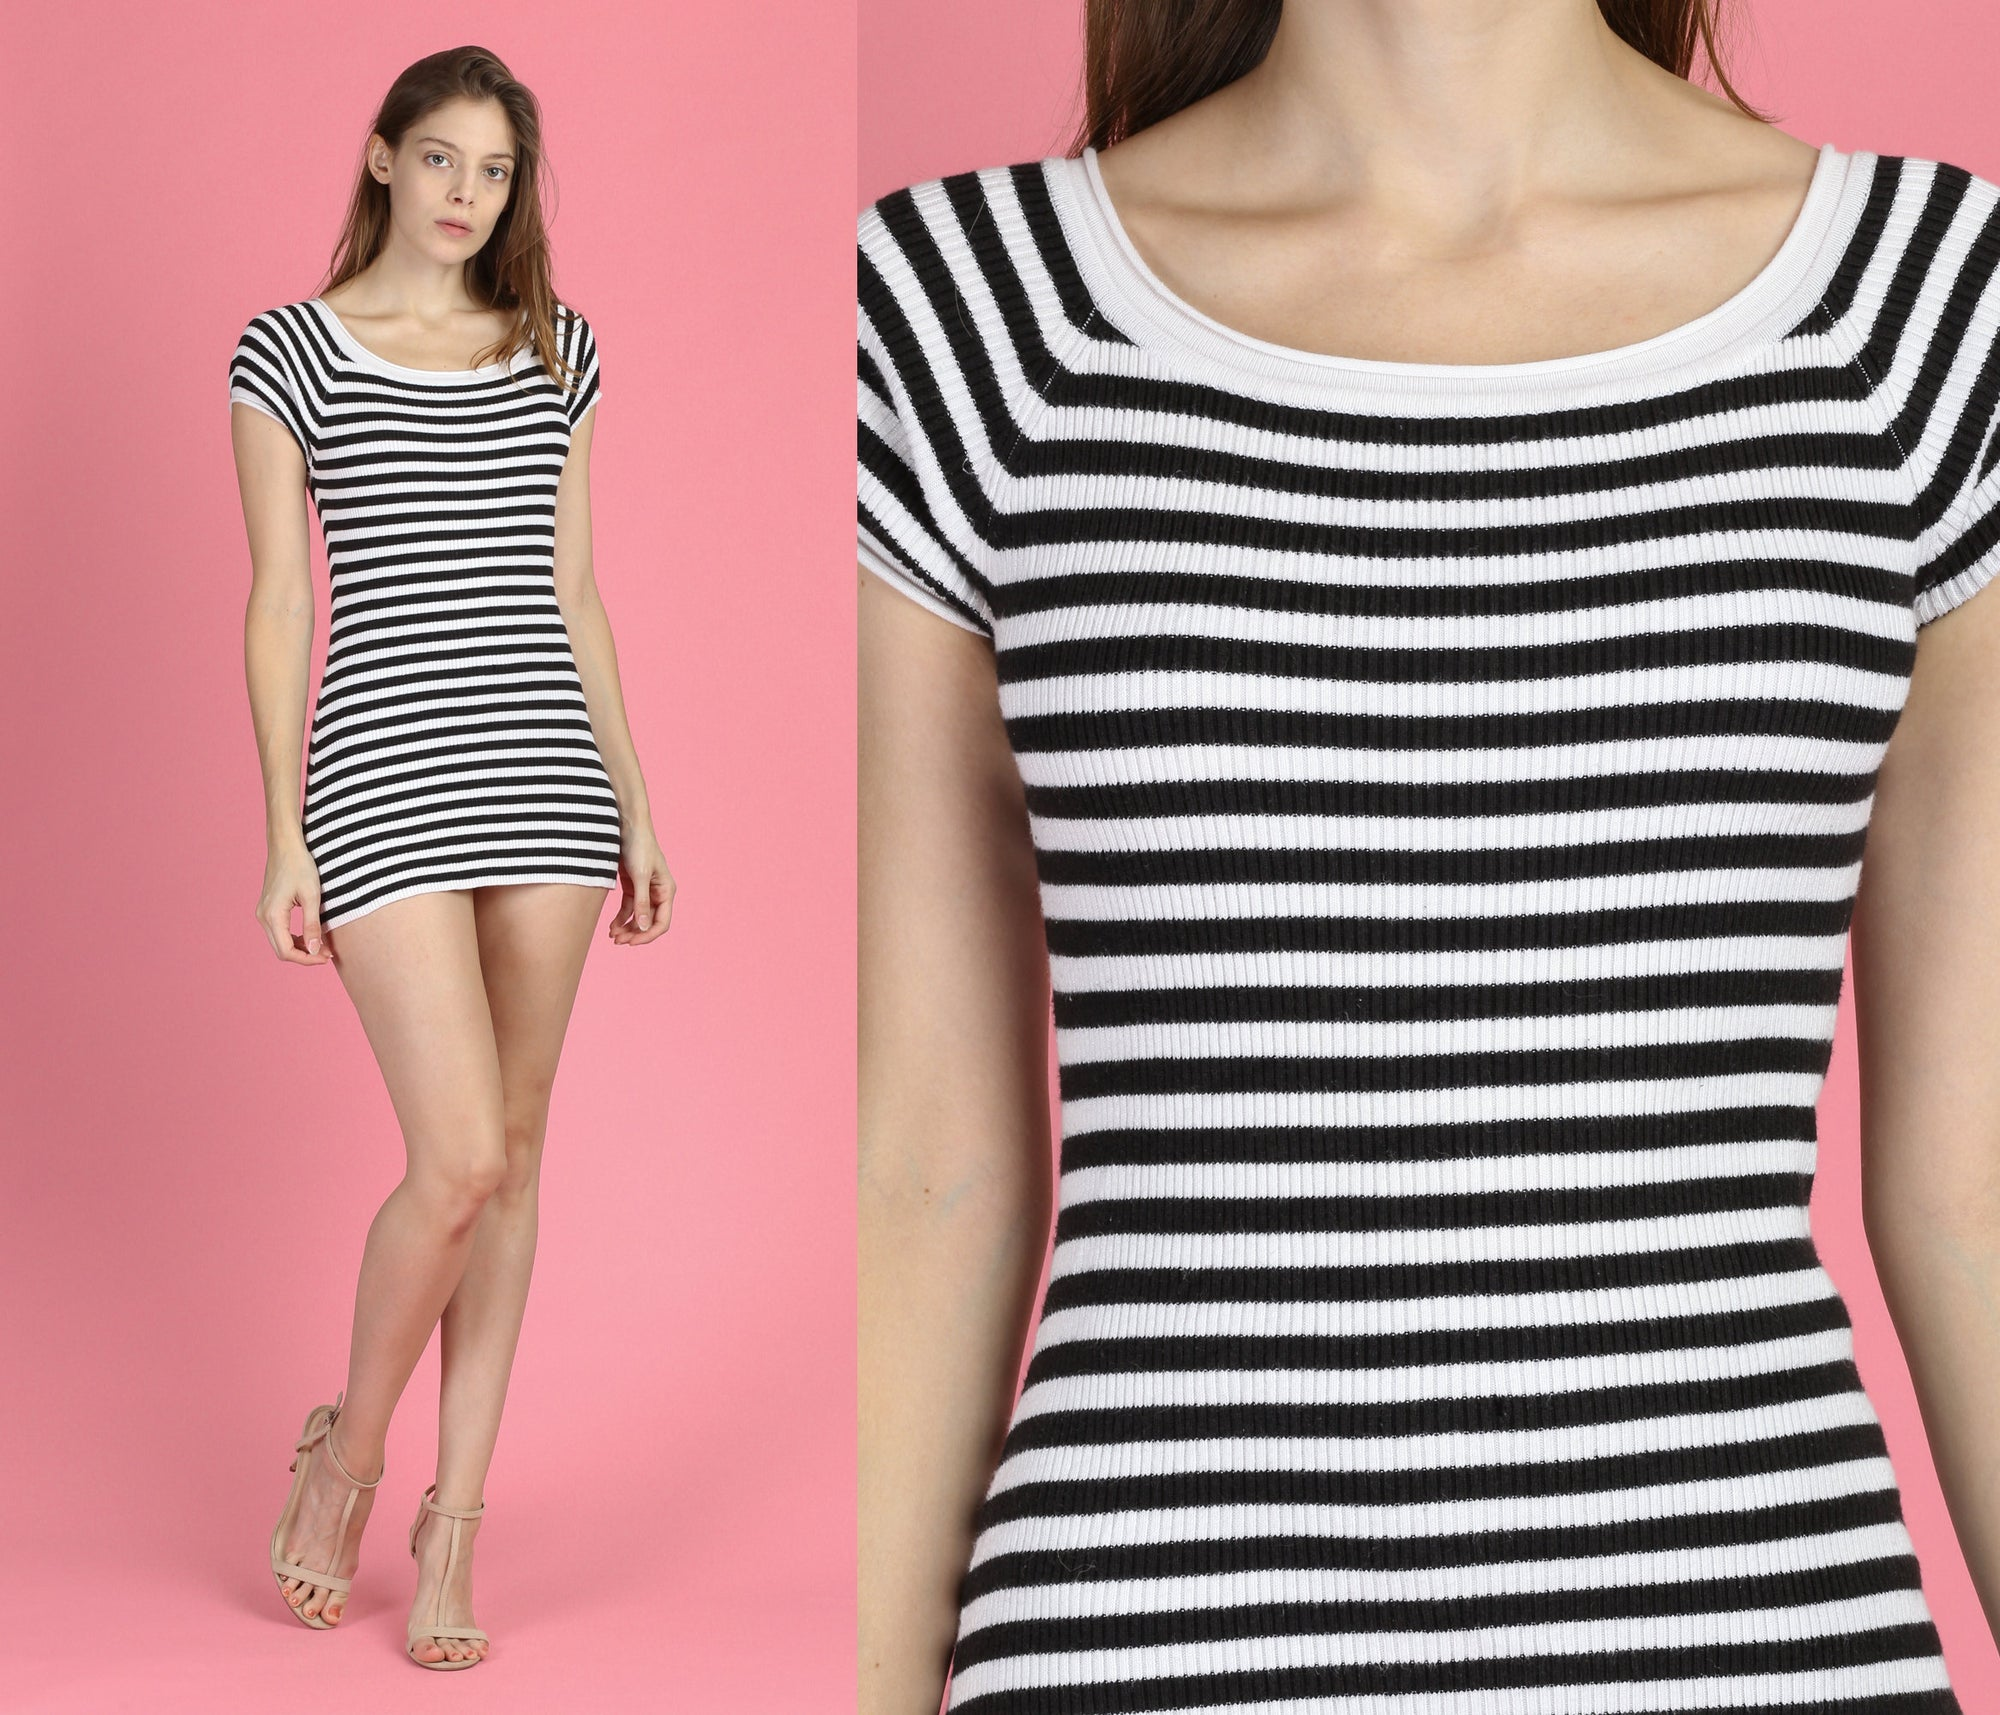 90s Black & White Striped Bodycon Mini Dress - Petite XS